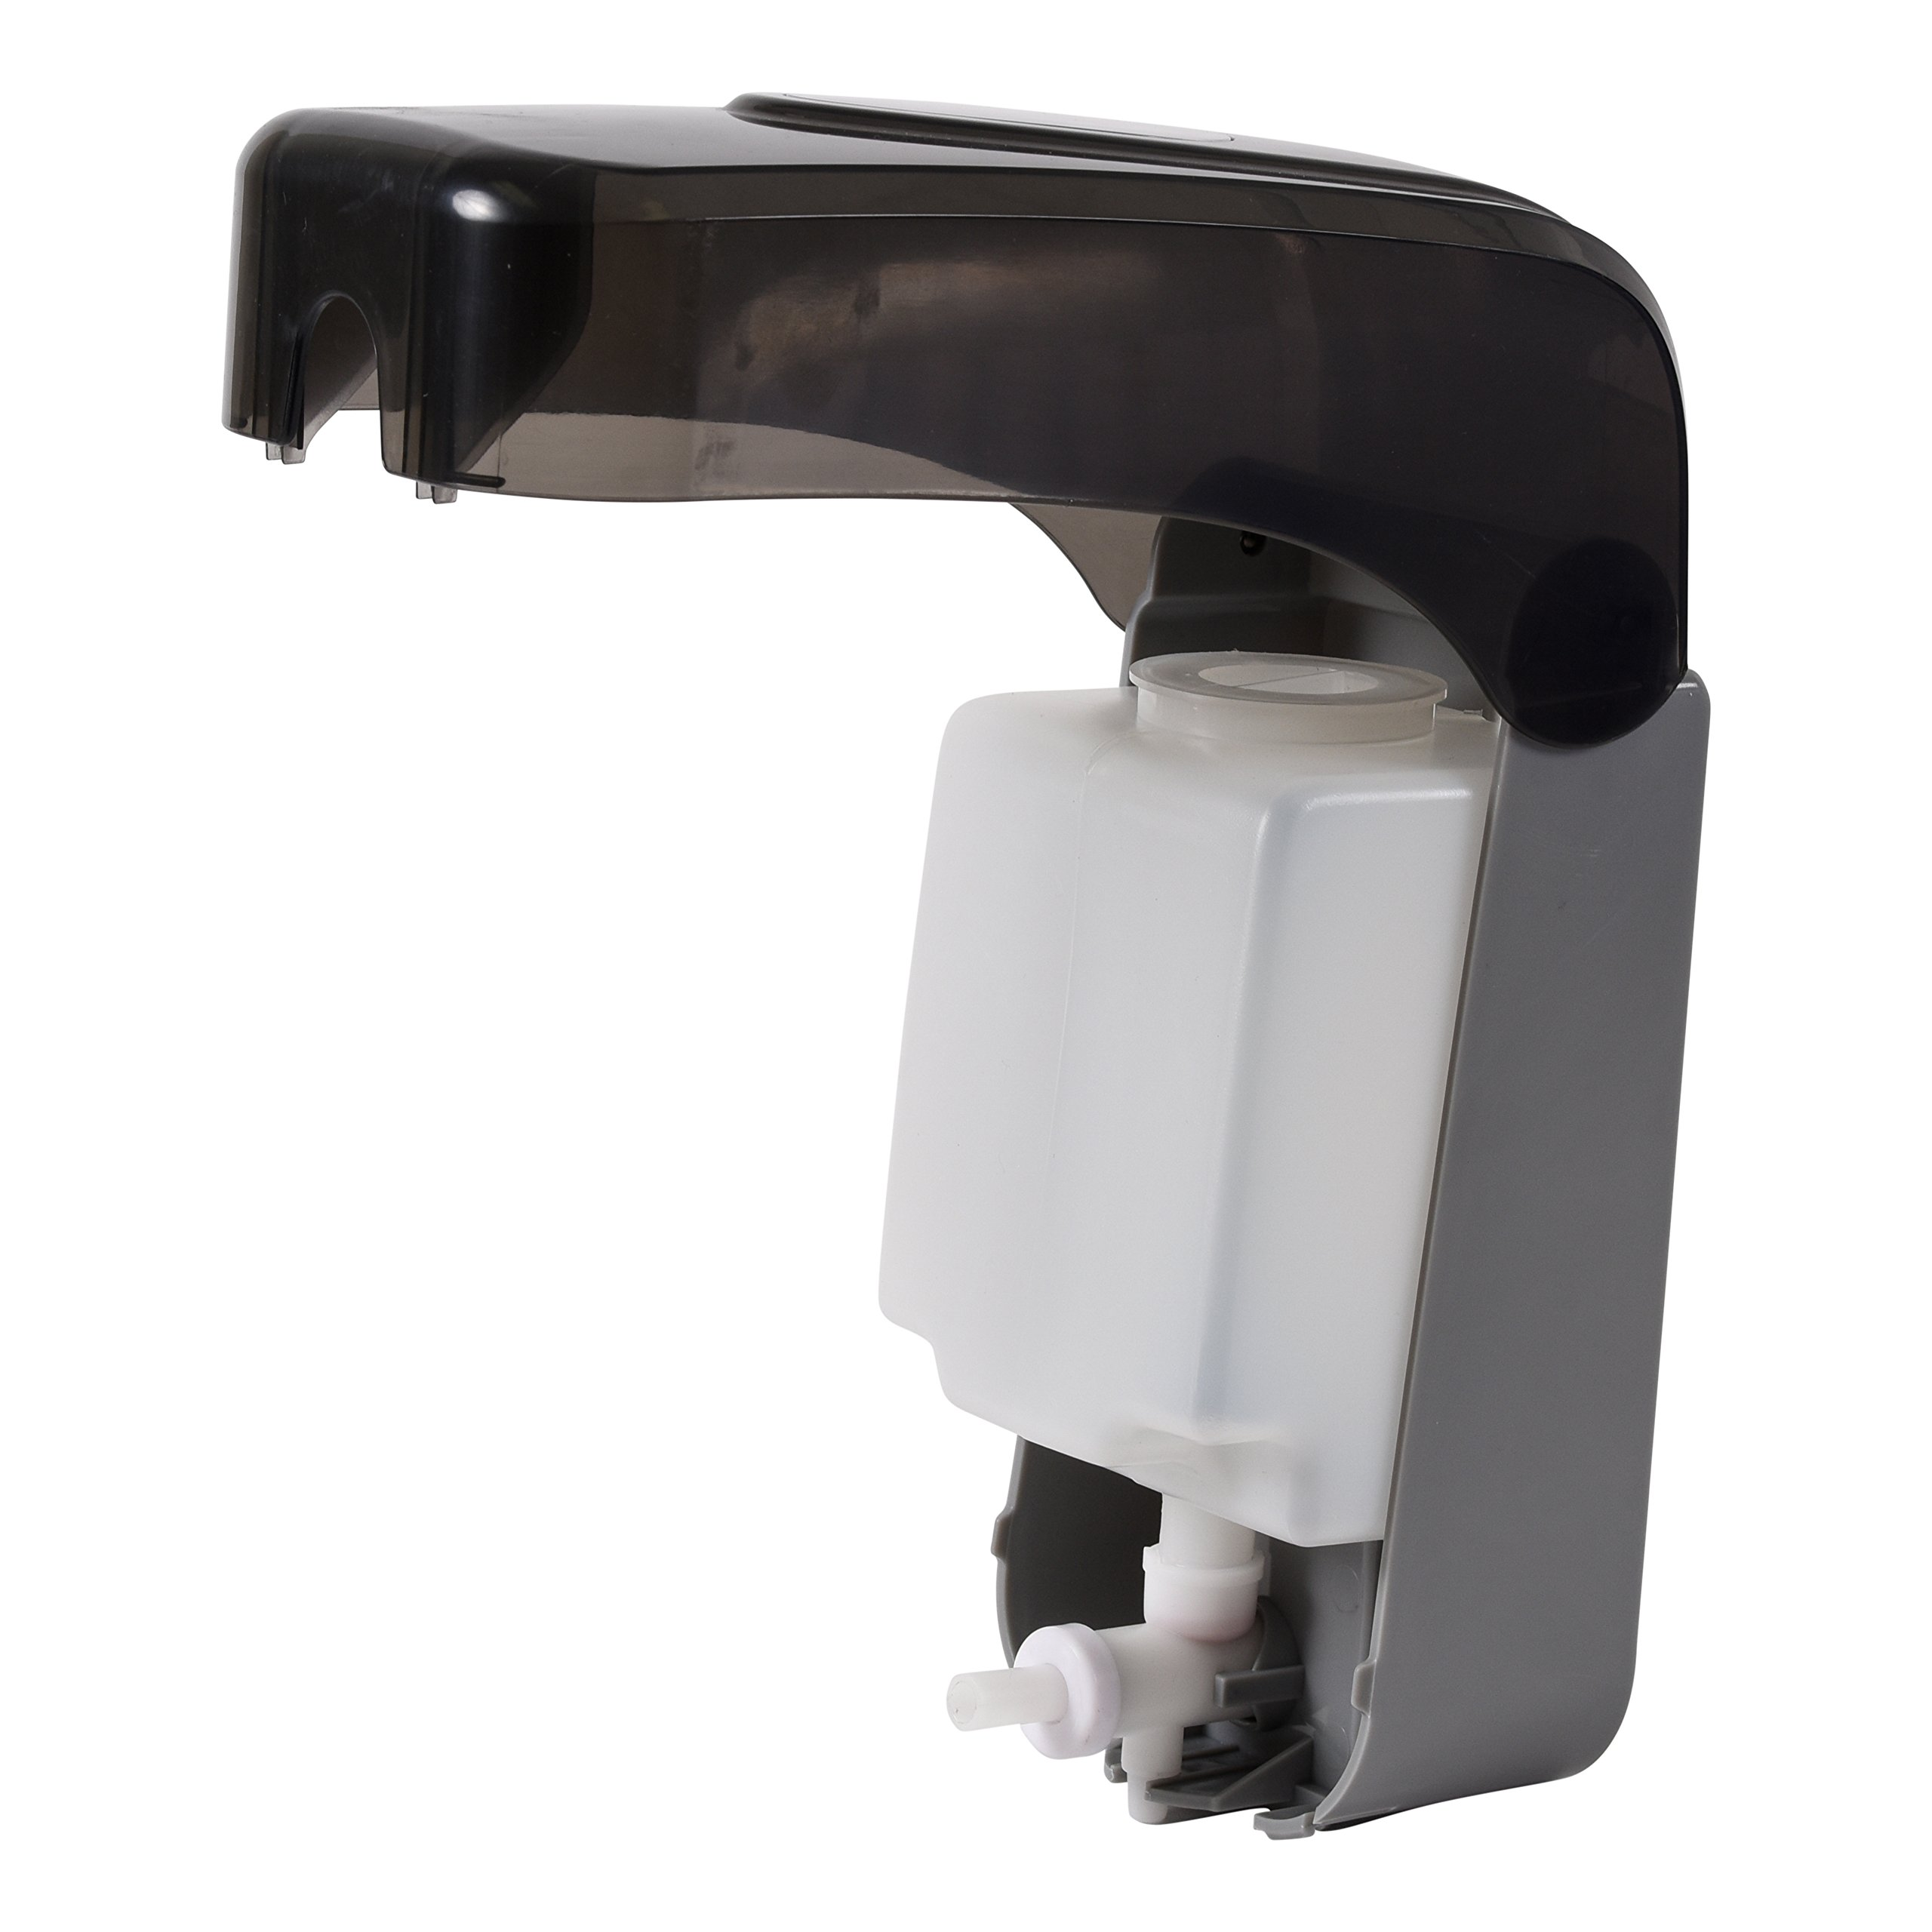 Soap Dispenser by Oasis Creations  Soap/Lotion-Wall Mount– 1000ml/33oz. Commercial Or Residential -Black Smoke by Oasis Creations (Image #4)